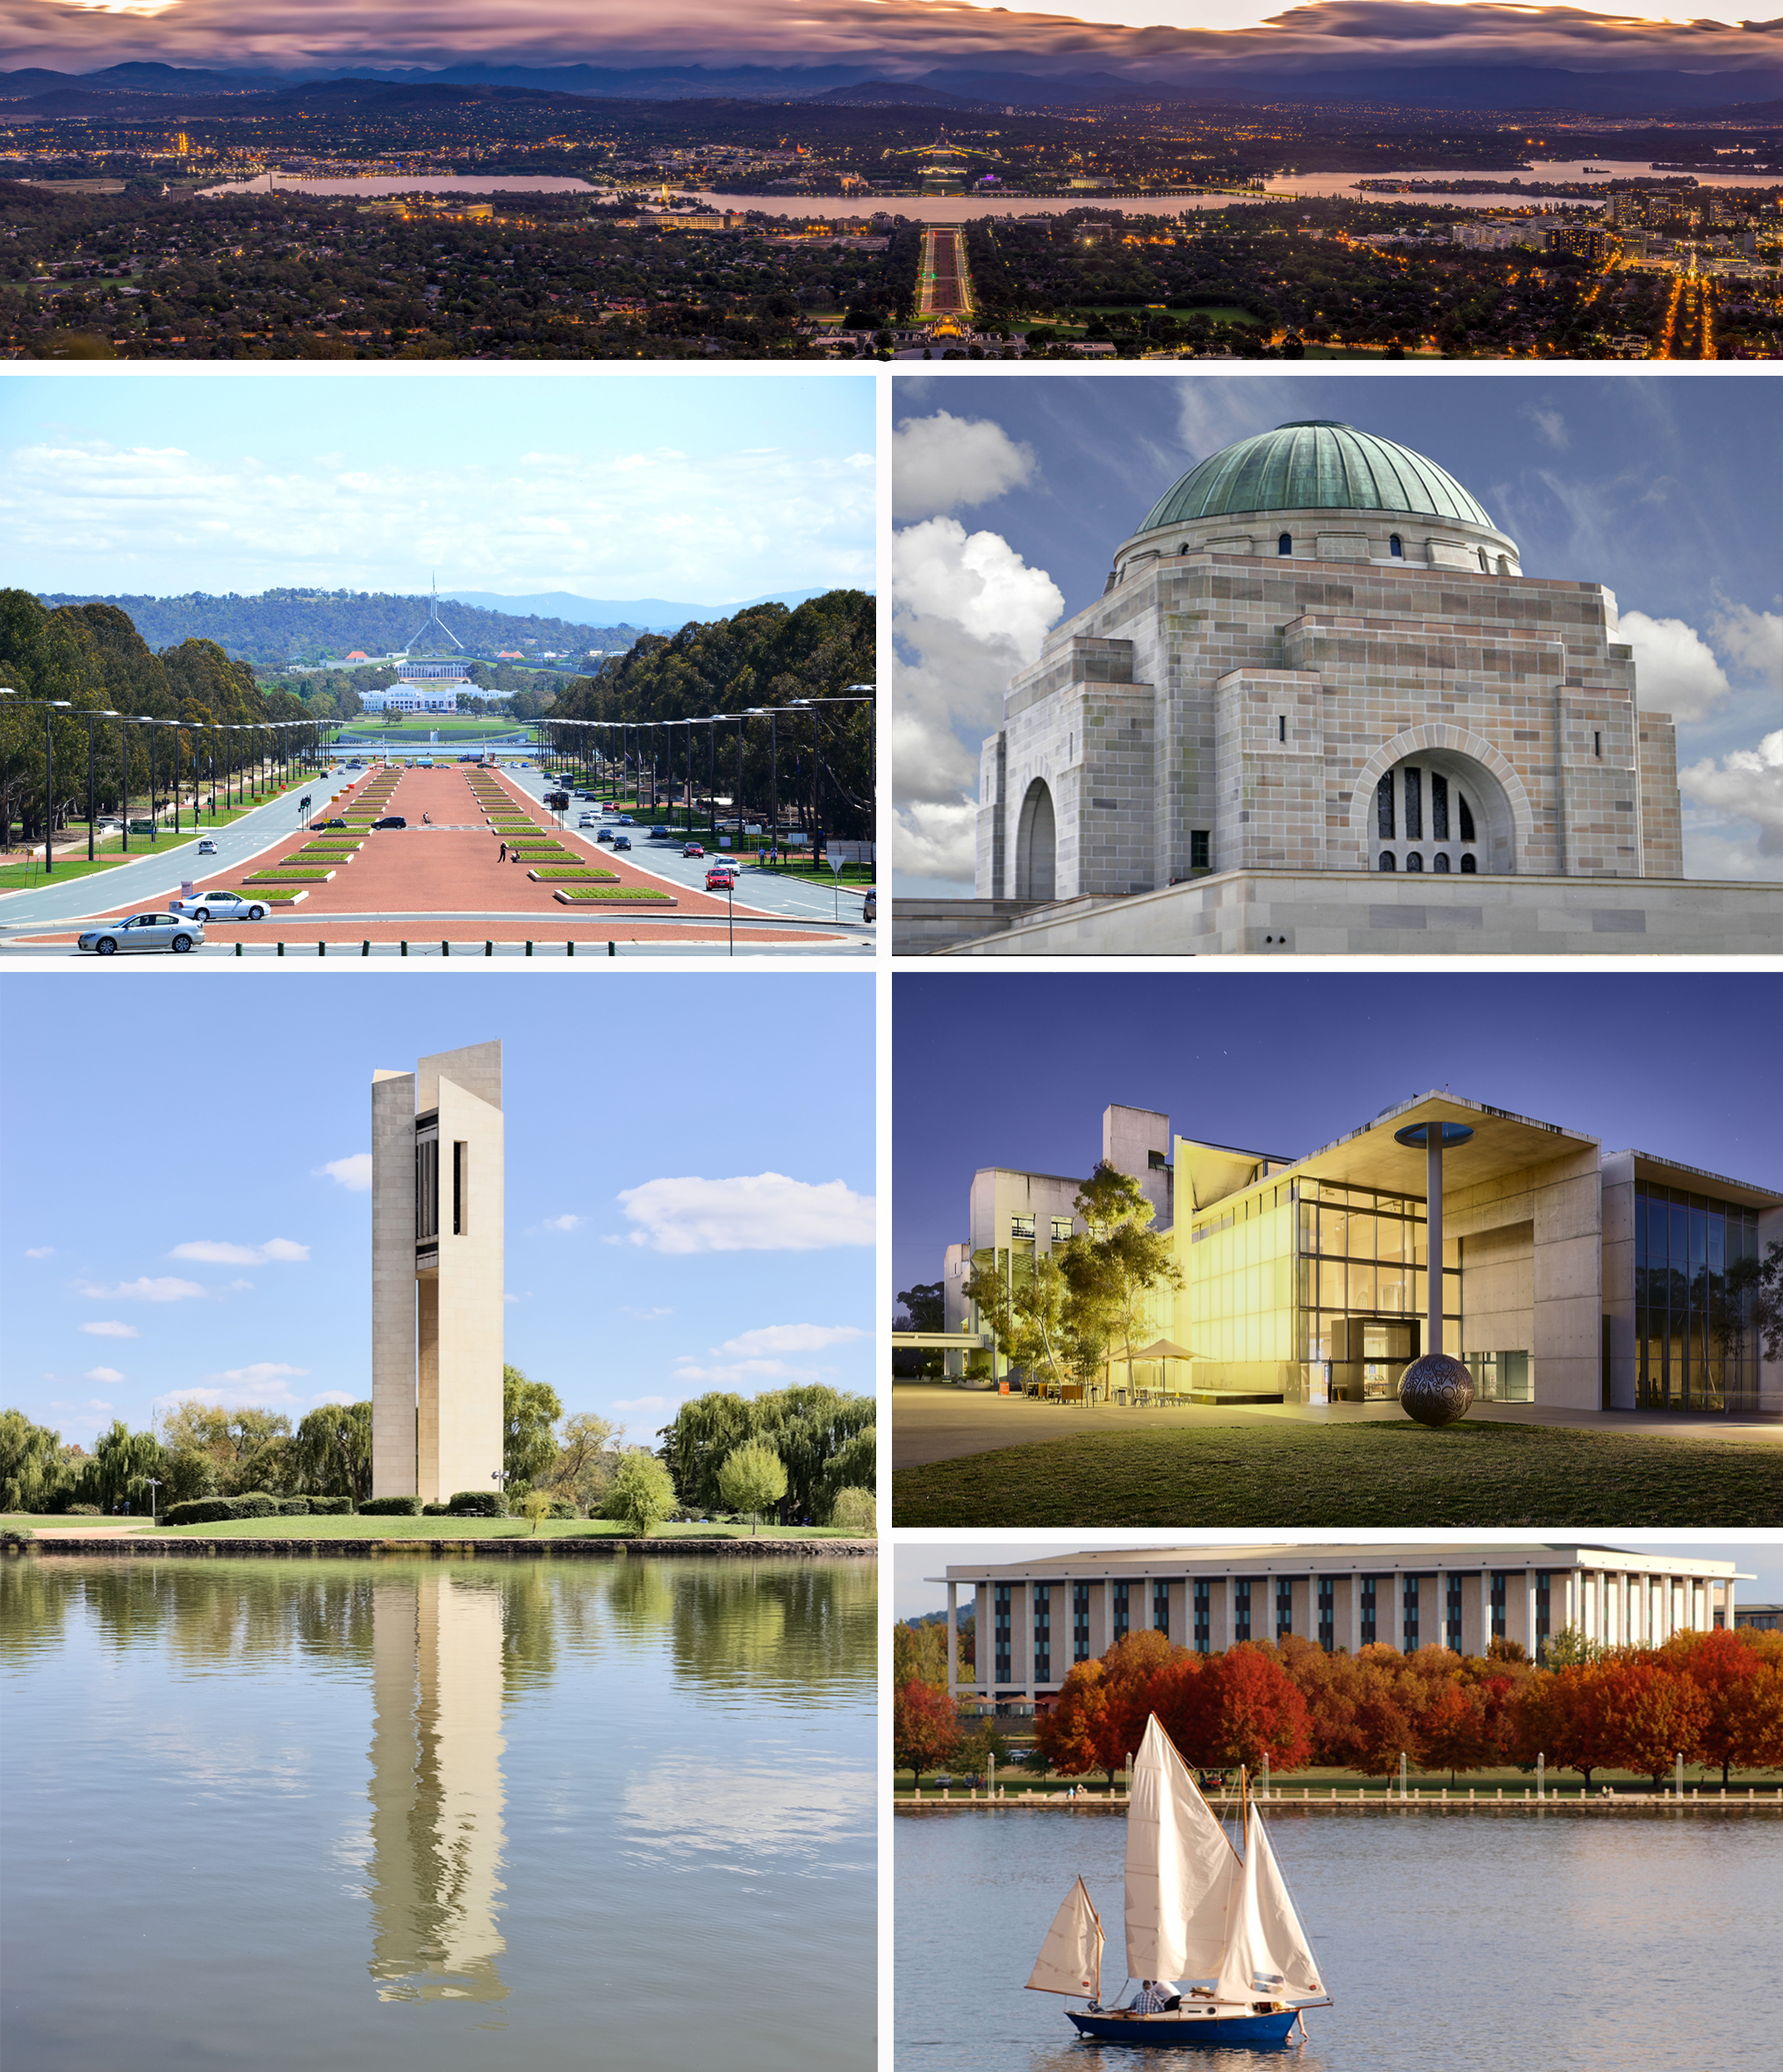 Canberra Today Canberra Wikipedia